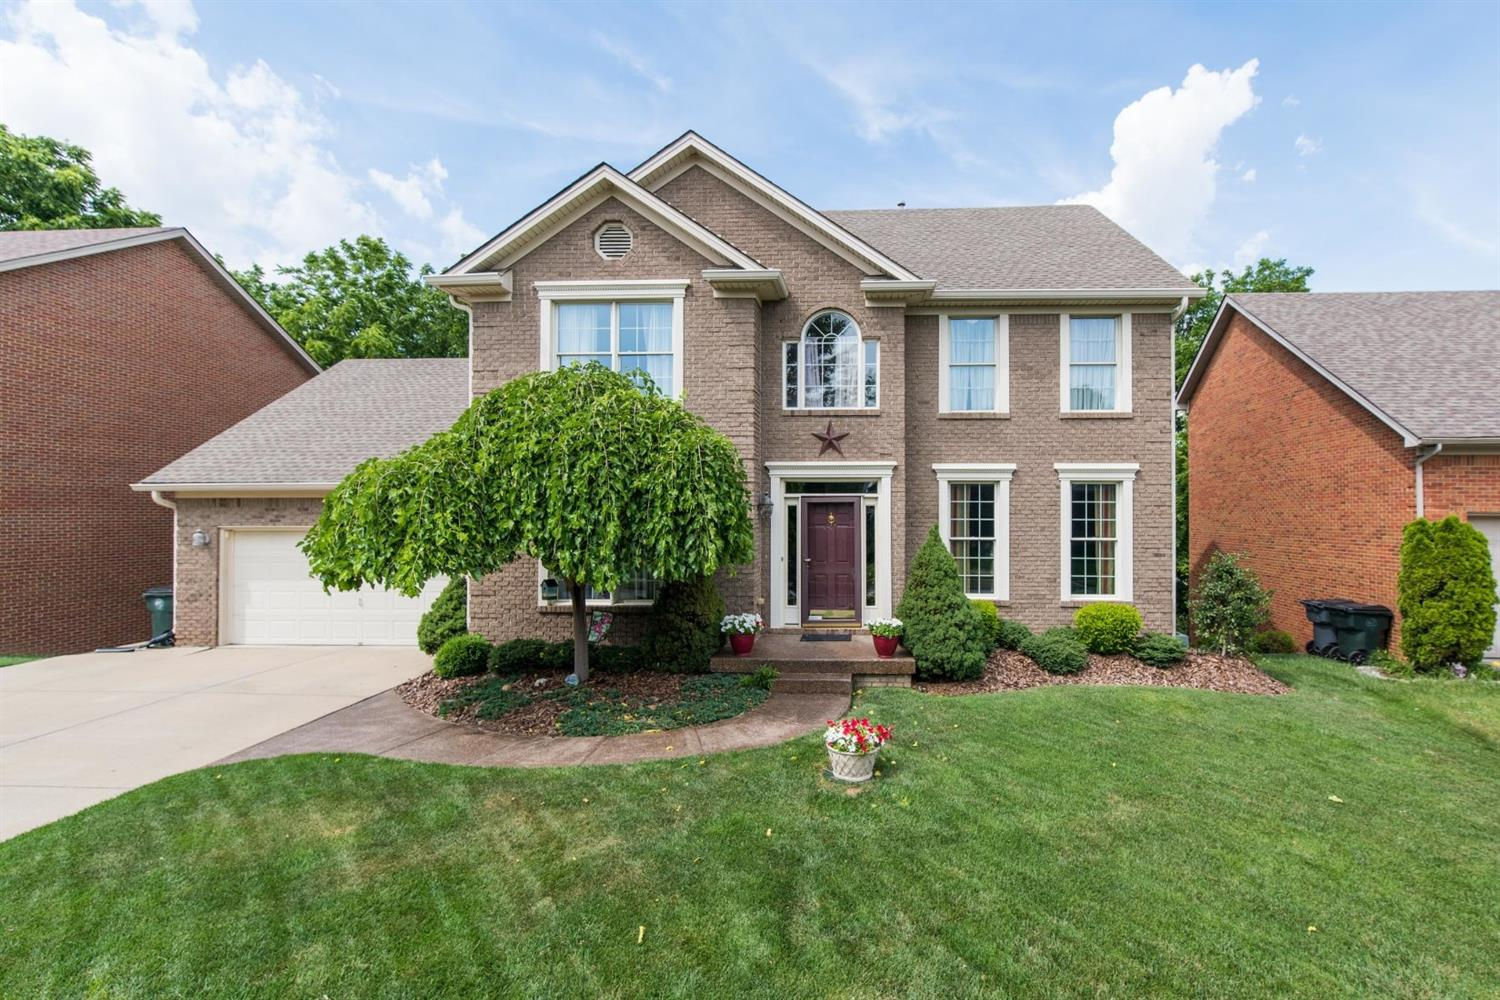 541 Alderbrook Way, Lexington, KY 40515